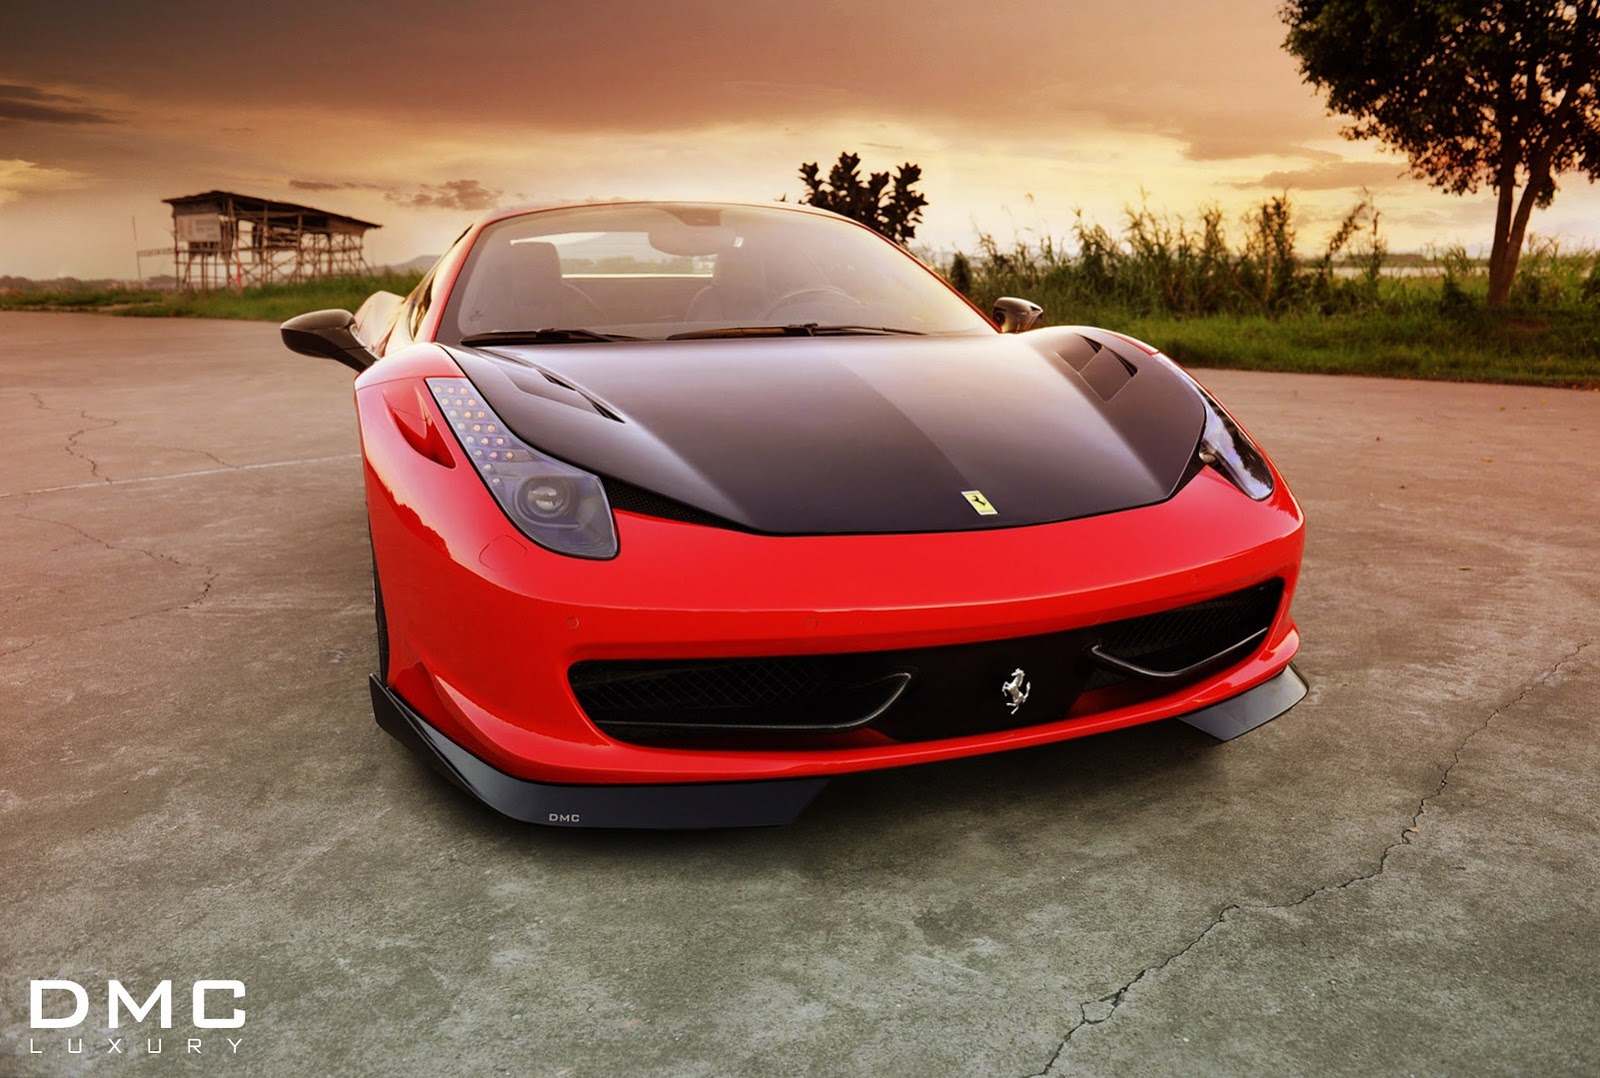 Ferrari 458 Spider by DMC - autoevolution on ferrari f50, ferrari testarossa, mclaren spider, ferrari california, ferrari superamerica, ferrari wallpaper, ferrari motorcycle, ferrari truck, ferrari convertible, ferrari fxx, ferrari f430, ferrari drifting, ferrari f12 berlinetta, ferrari p3, ferrari 612 scaglietti, ferrari motor, ferrari 911 turbo, ferrari spyder,